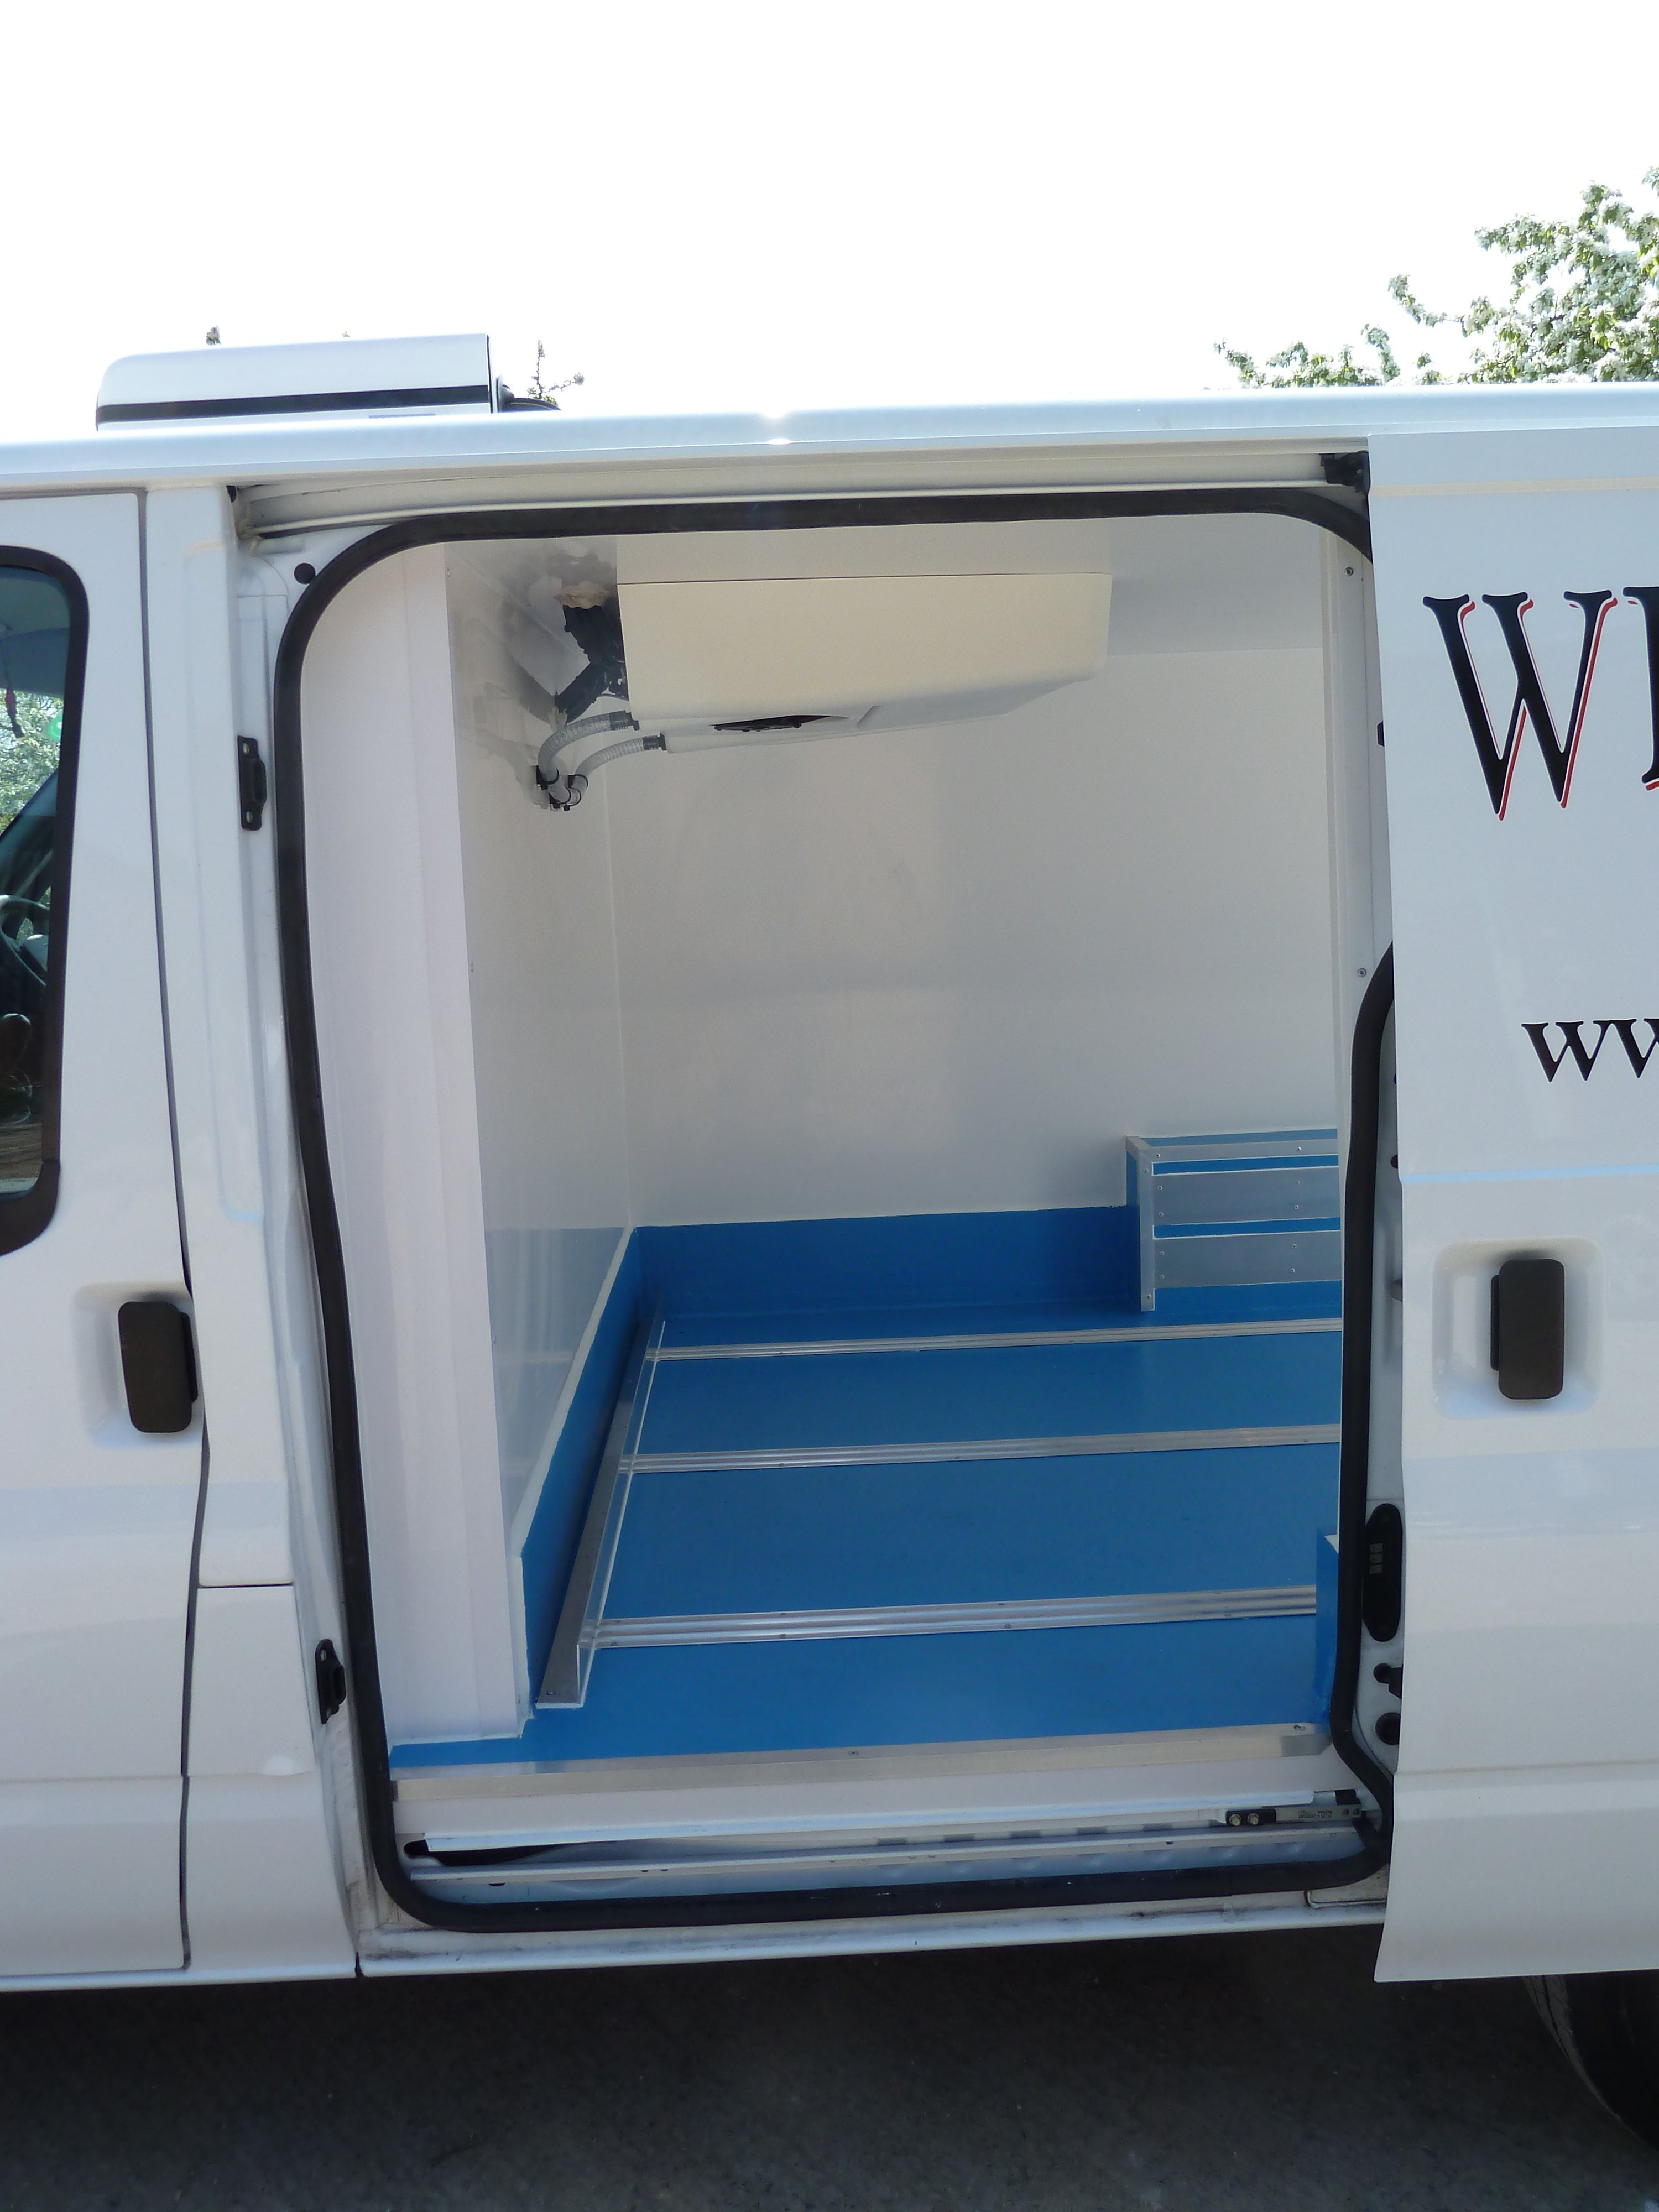 Pallet Protection For Refrigerated Vehicle Conversion